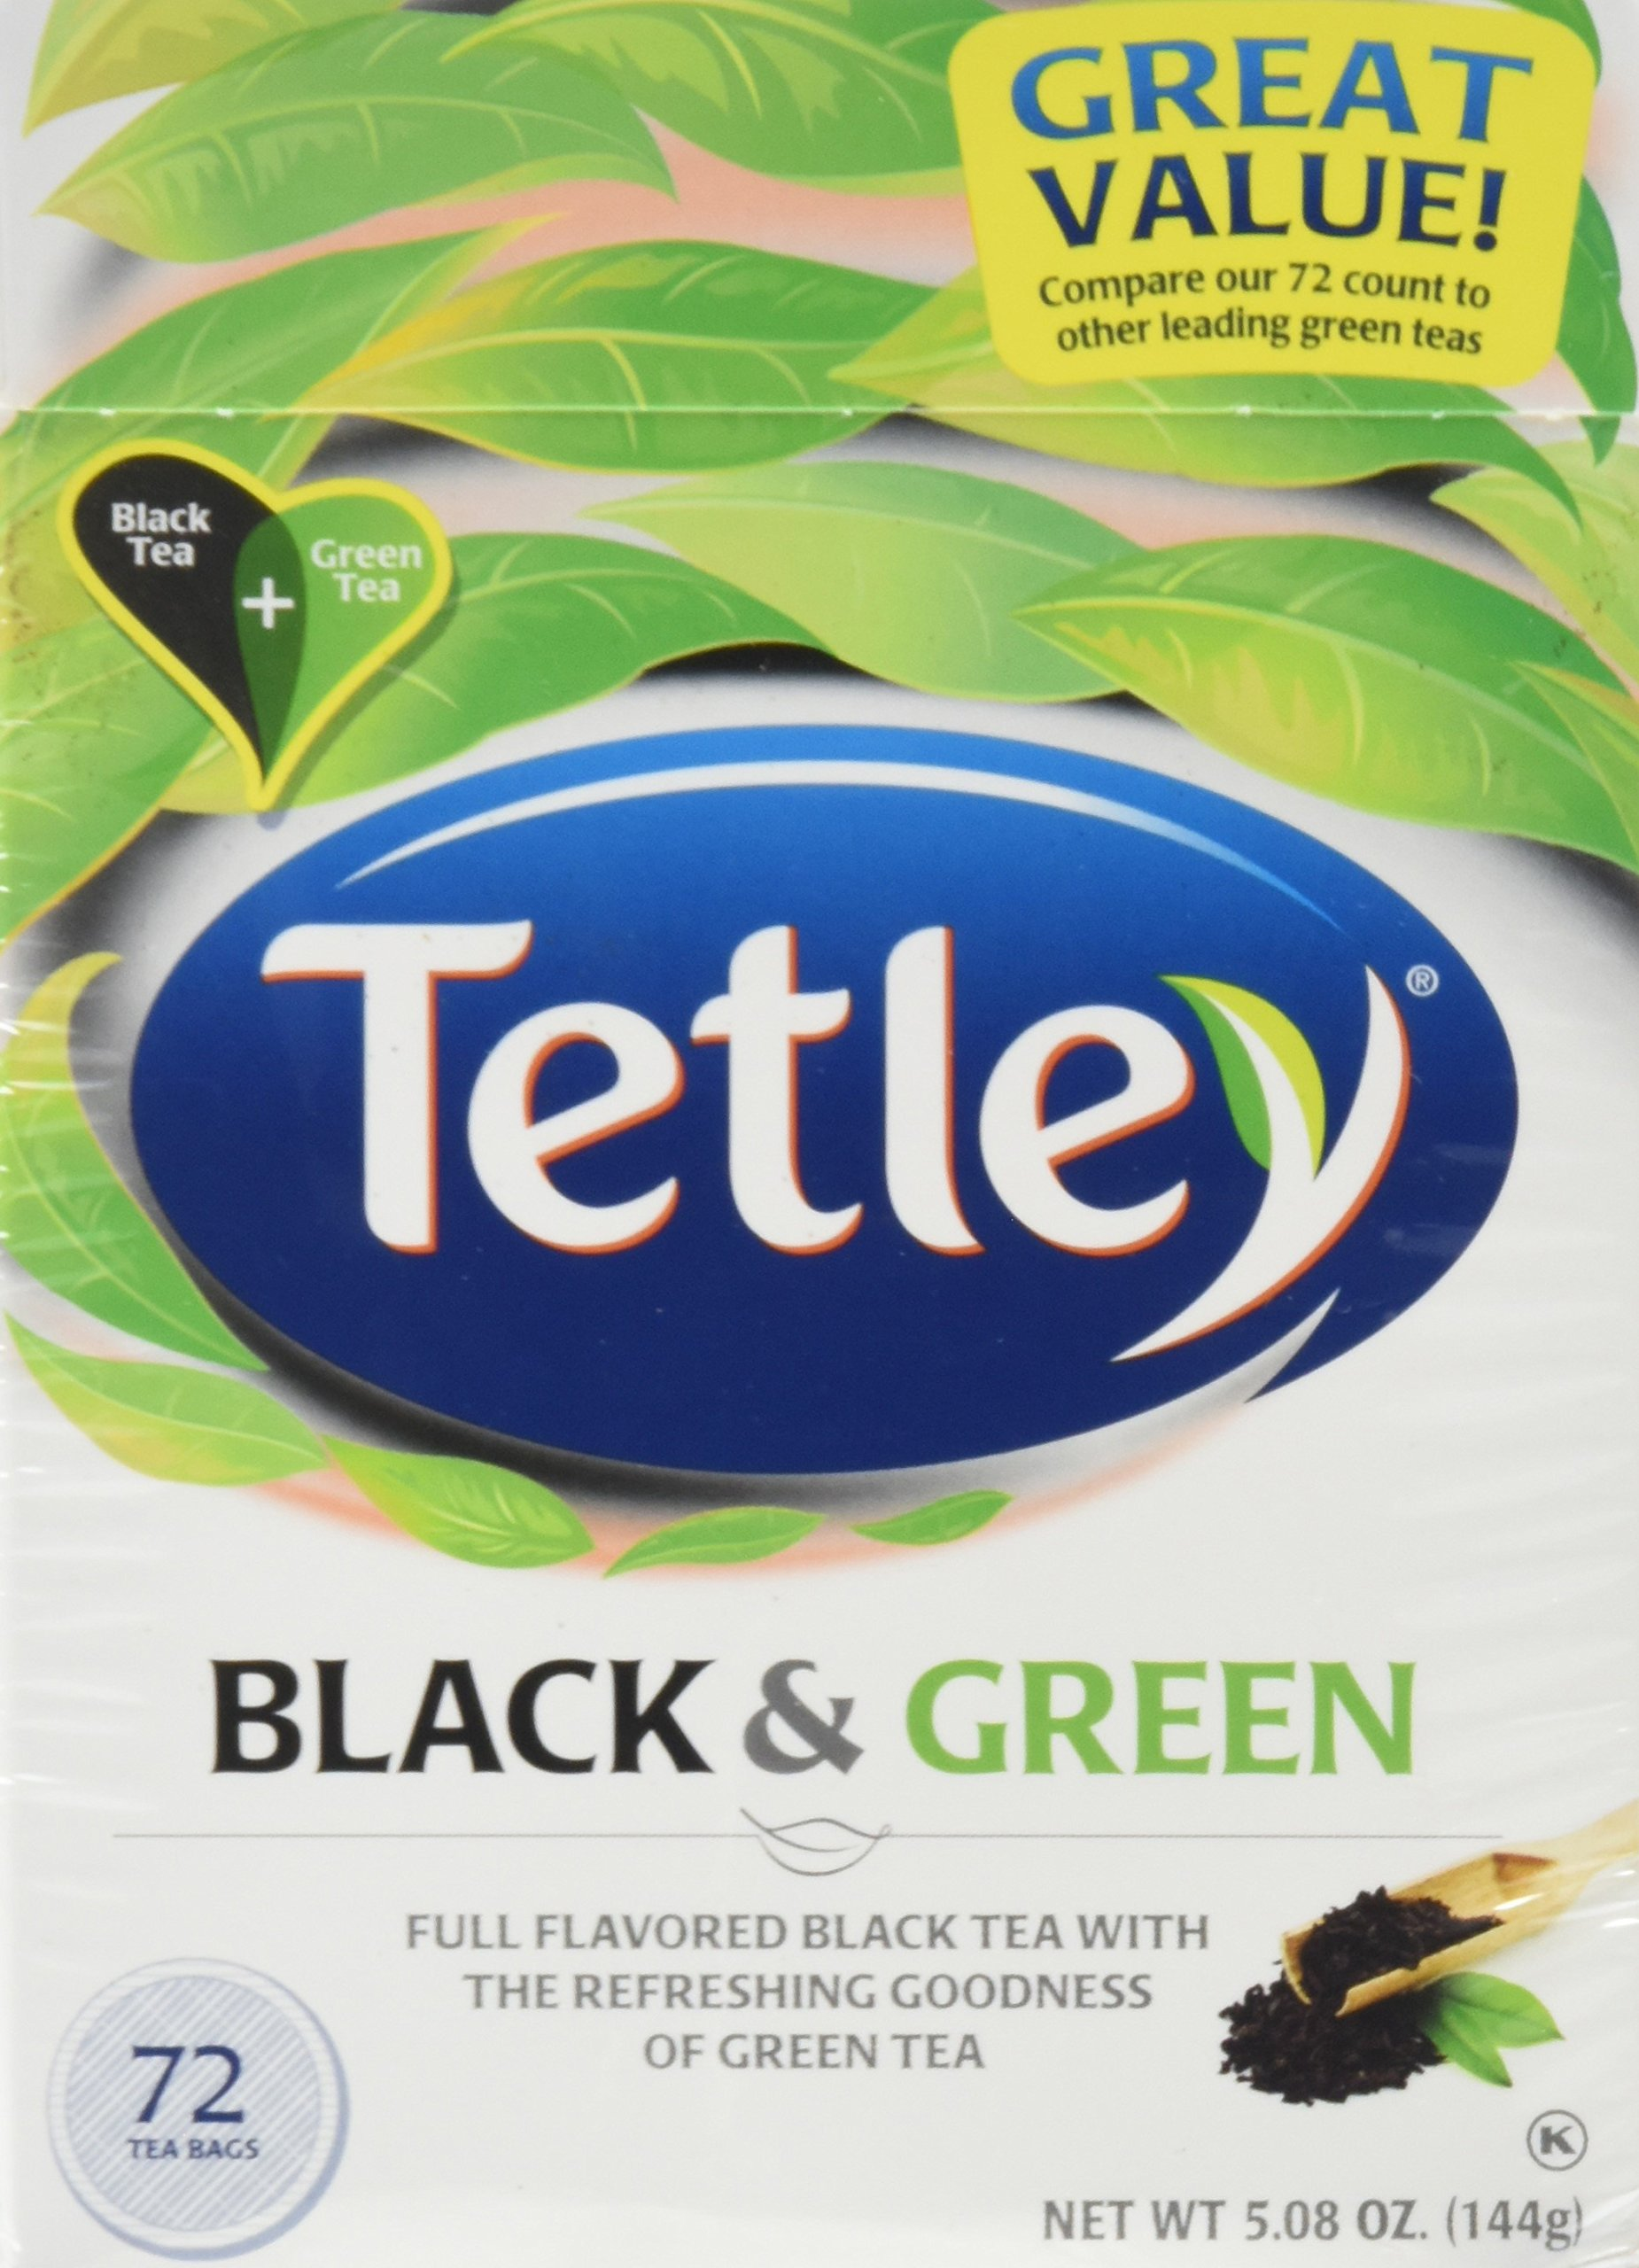 Tetley, Black & Green Tea Bags, 72 Count, 5.08oz Box (Pack of 3)